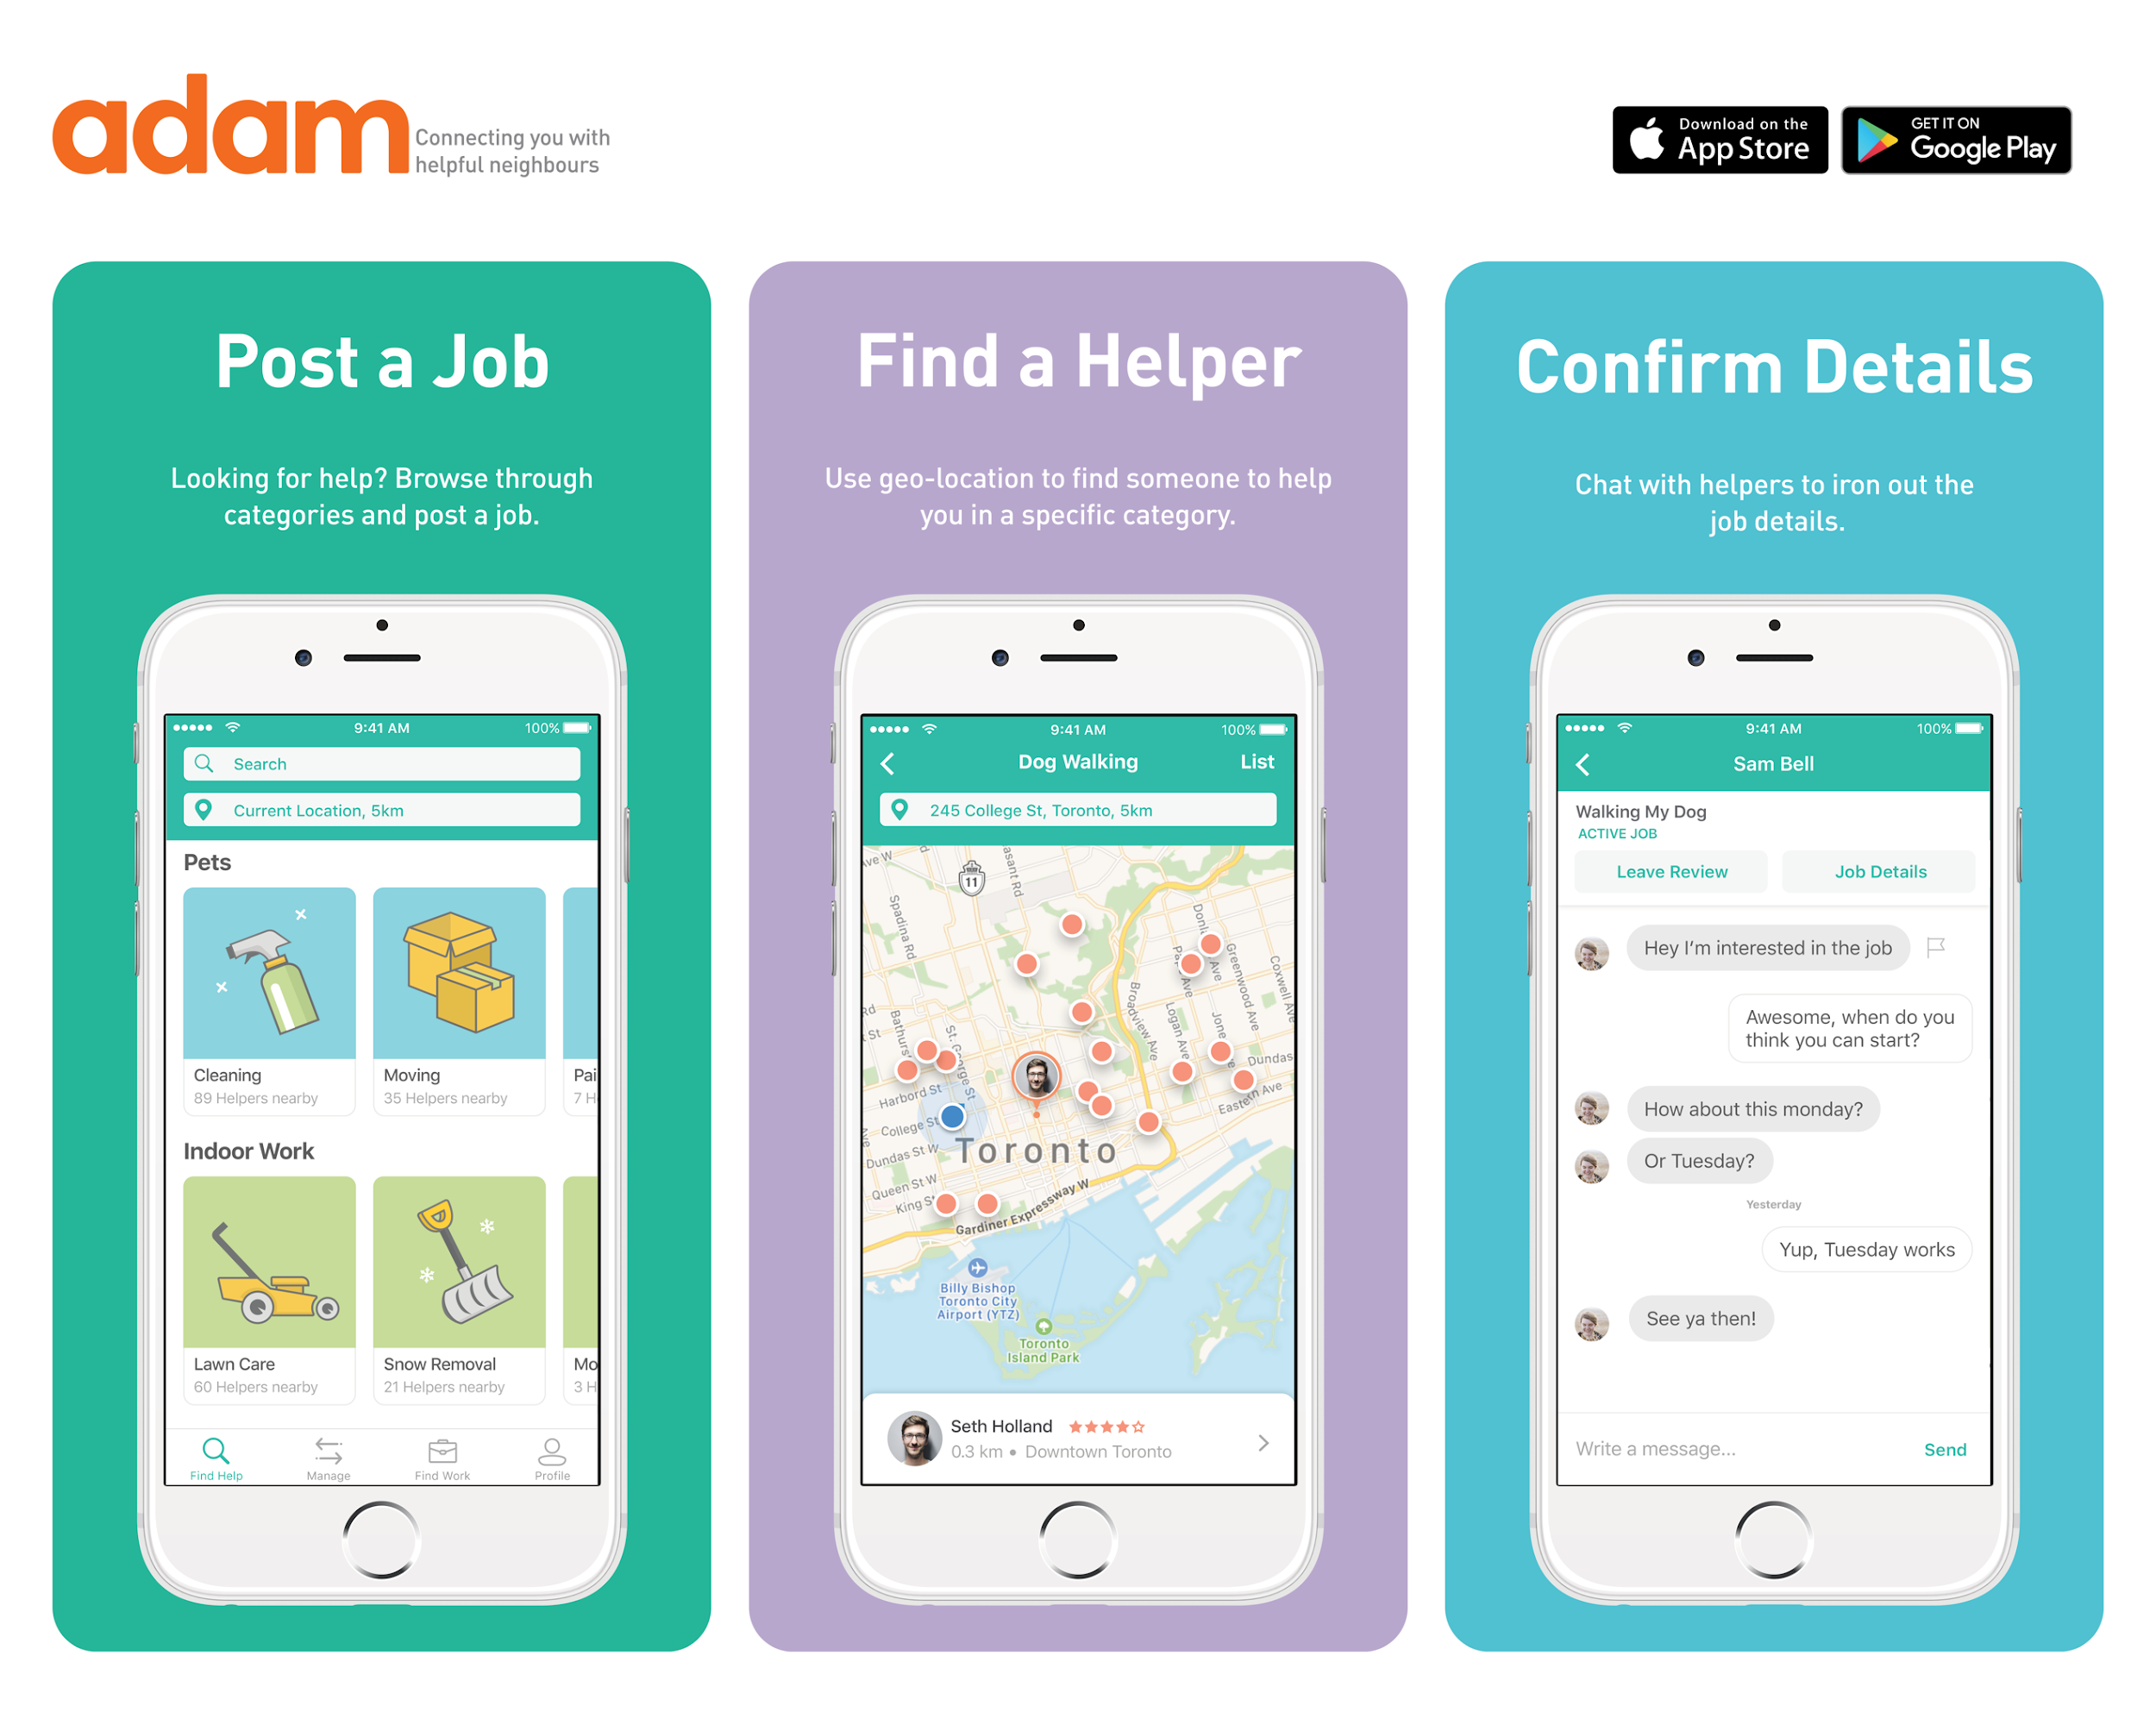 How to Use the Adam App